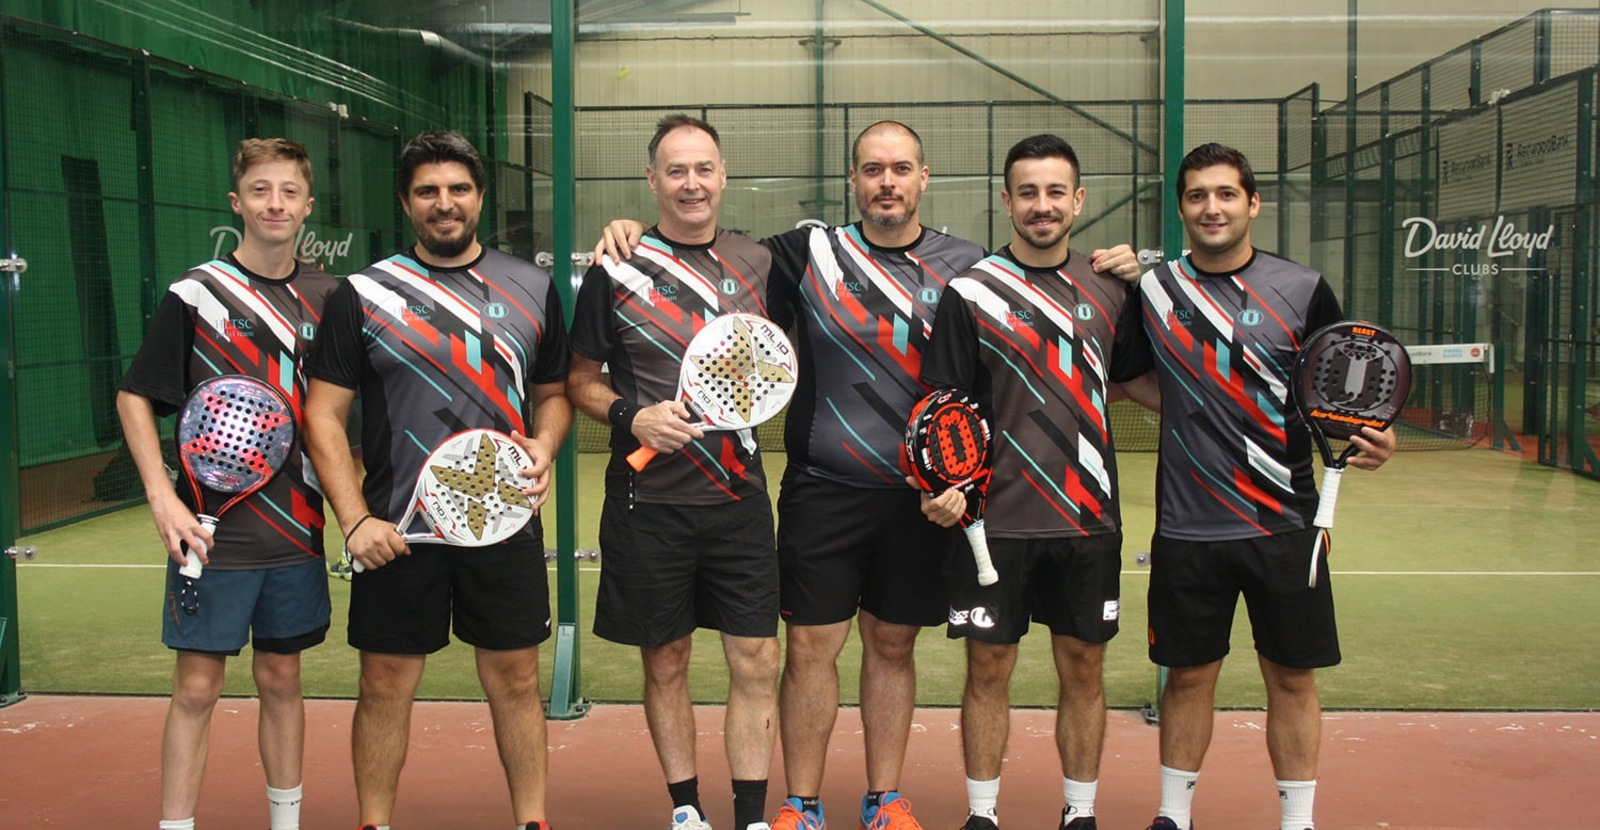 National Club Championships Team 2019